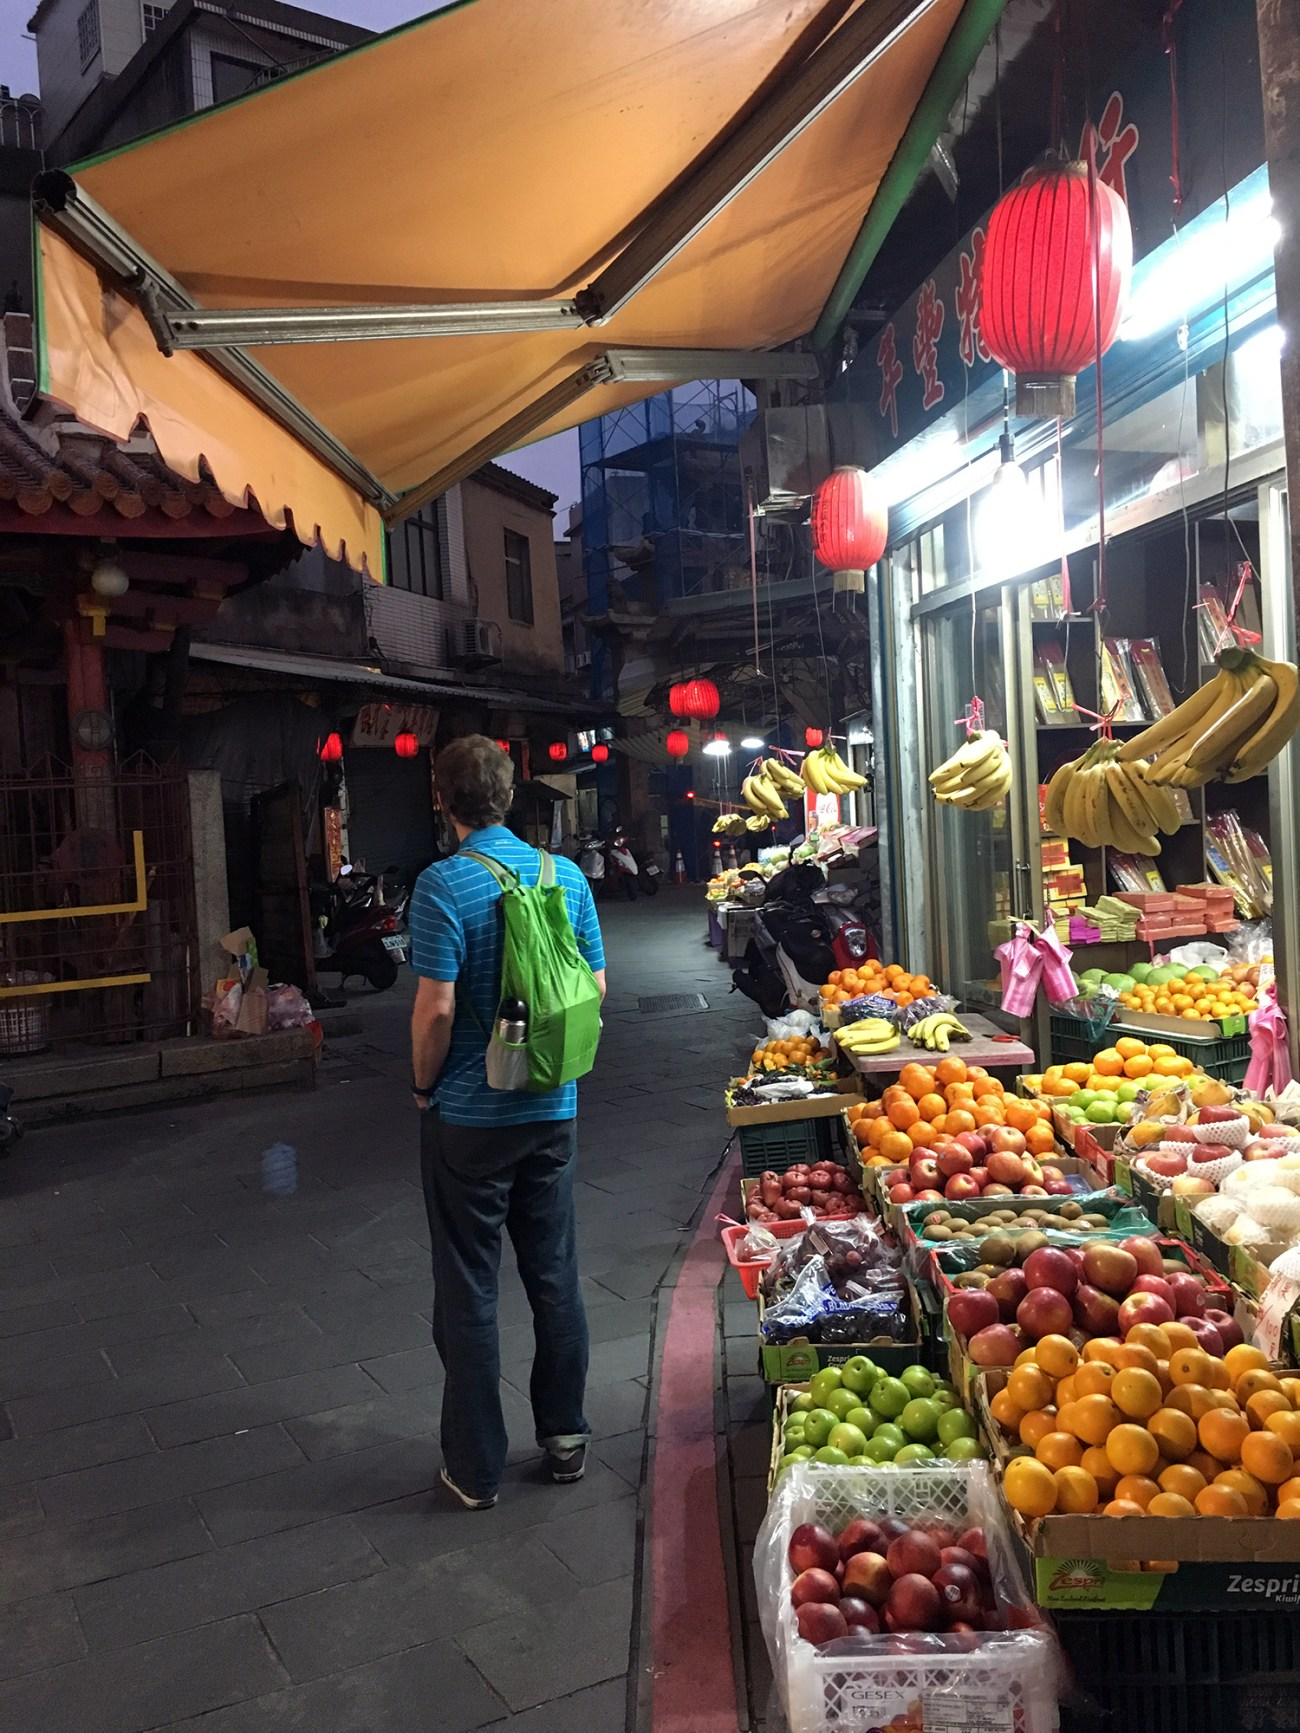 How NOT to Begin An Early Retirement… Or Maybe Exactly How to Do It // OurNextLife.com // We think we did this wrong in starting out our early retirement with too many things, including a mad scramble to get out the door to our trip to Taiwan. Or maybe we did it exactly right by accident?